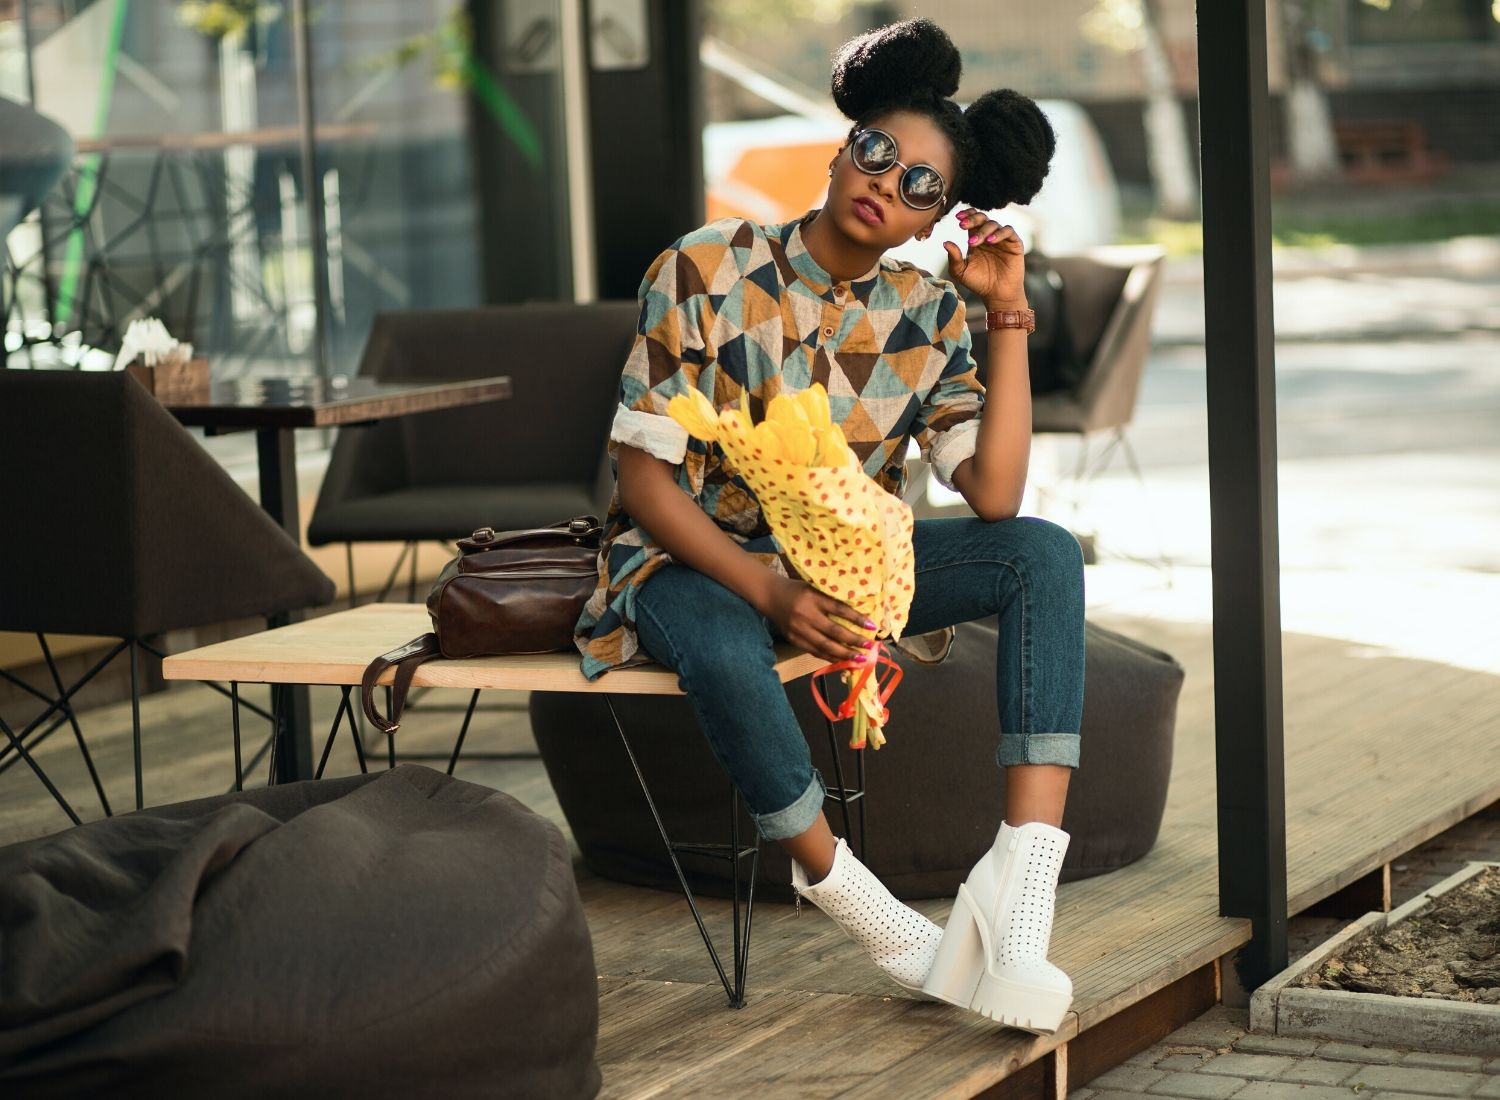 Top 15 Fashion Trends That Can Never Go Out Of Fashion